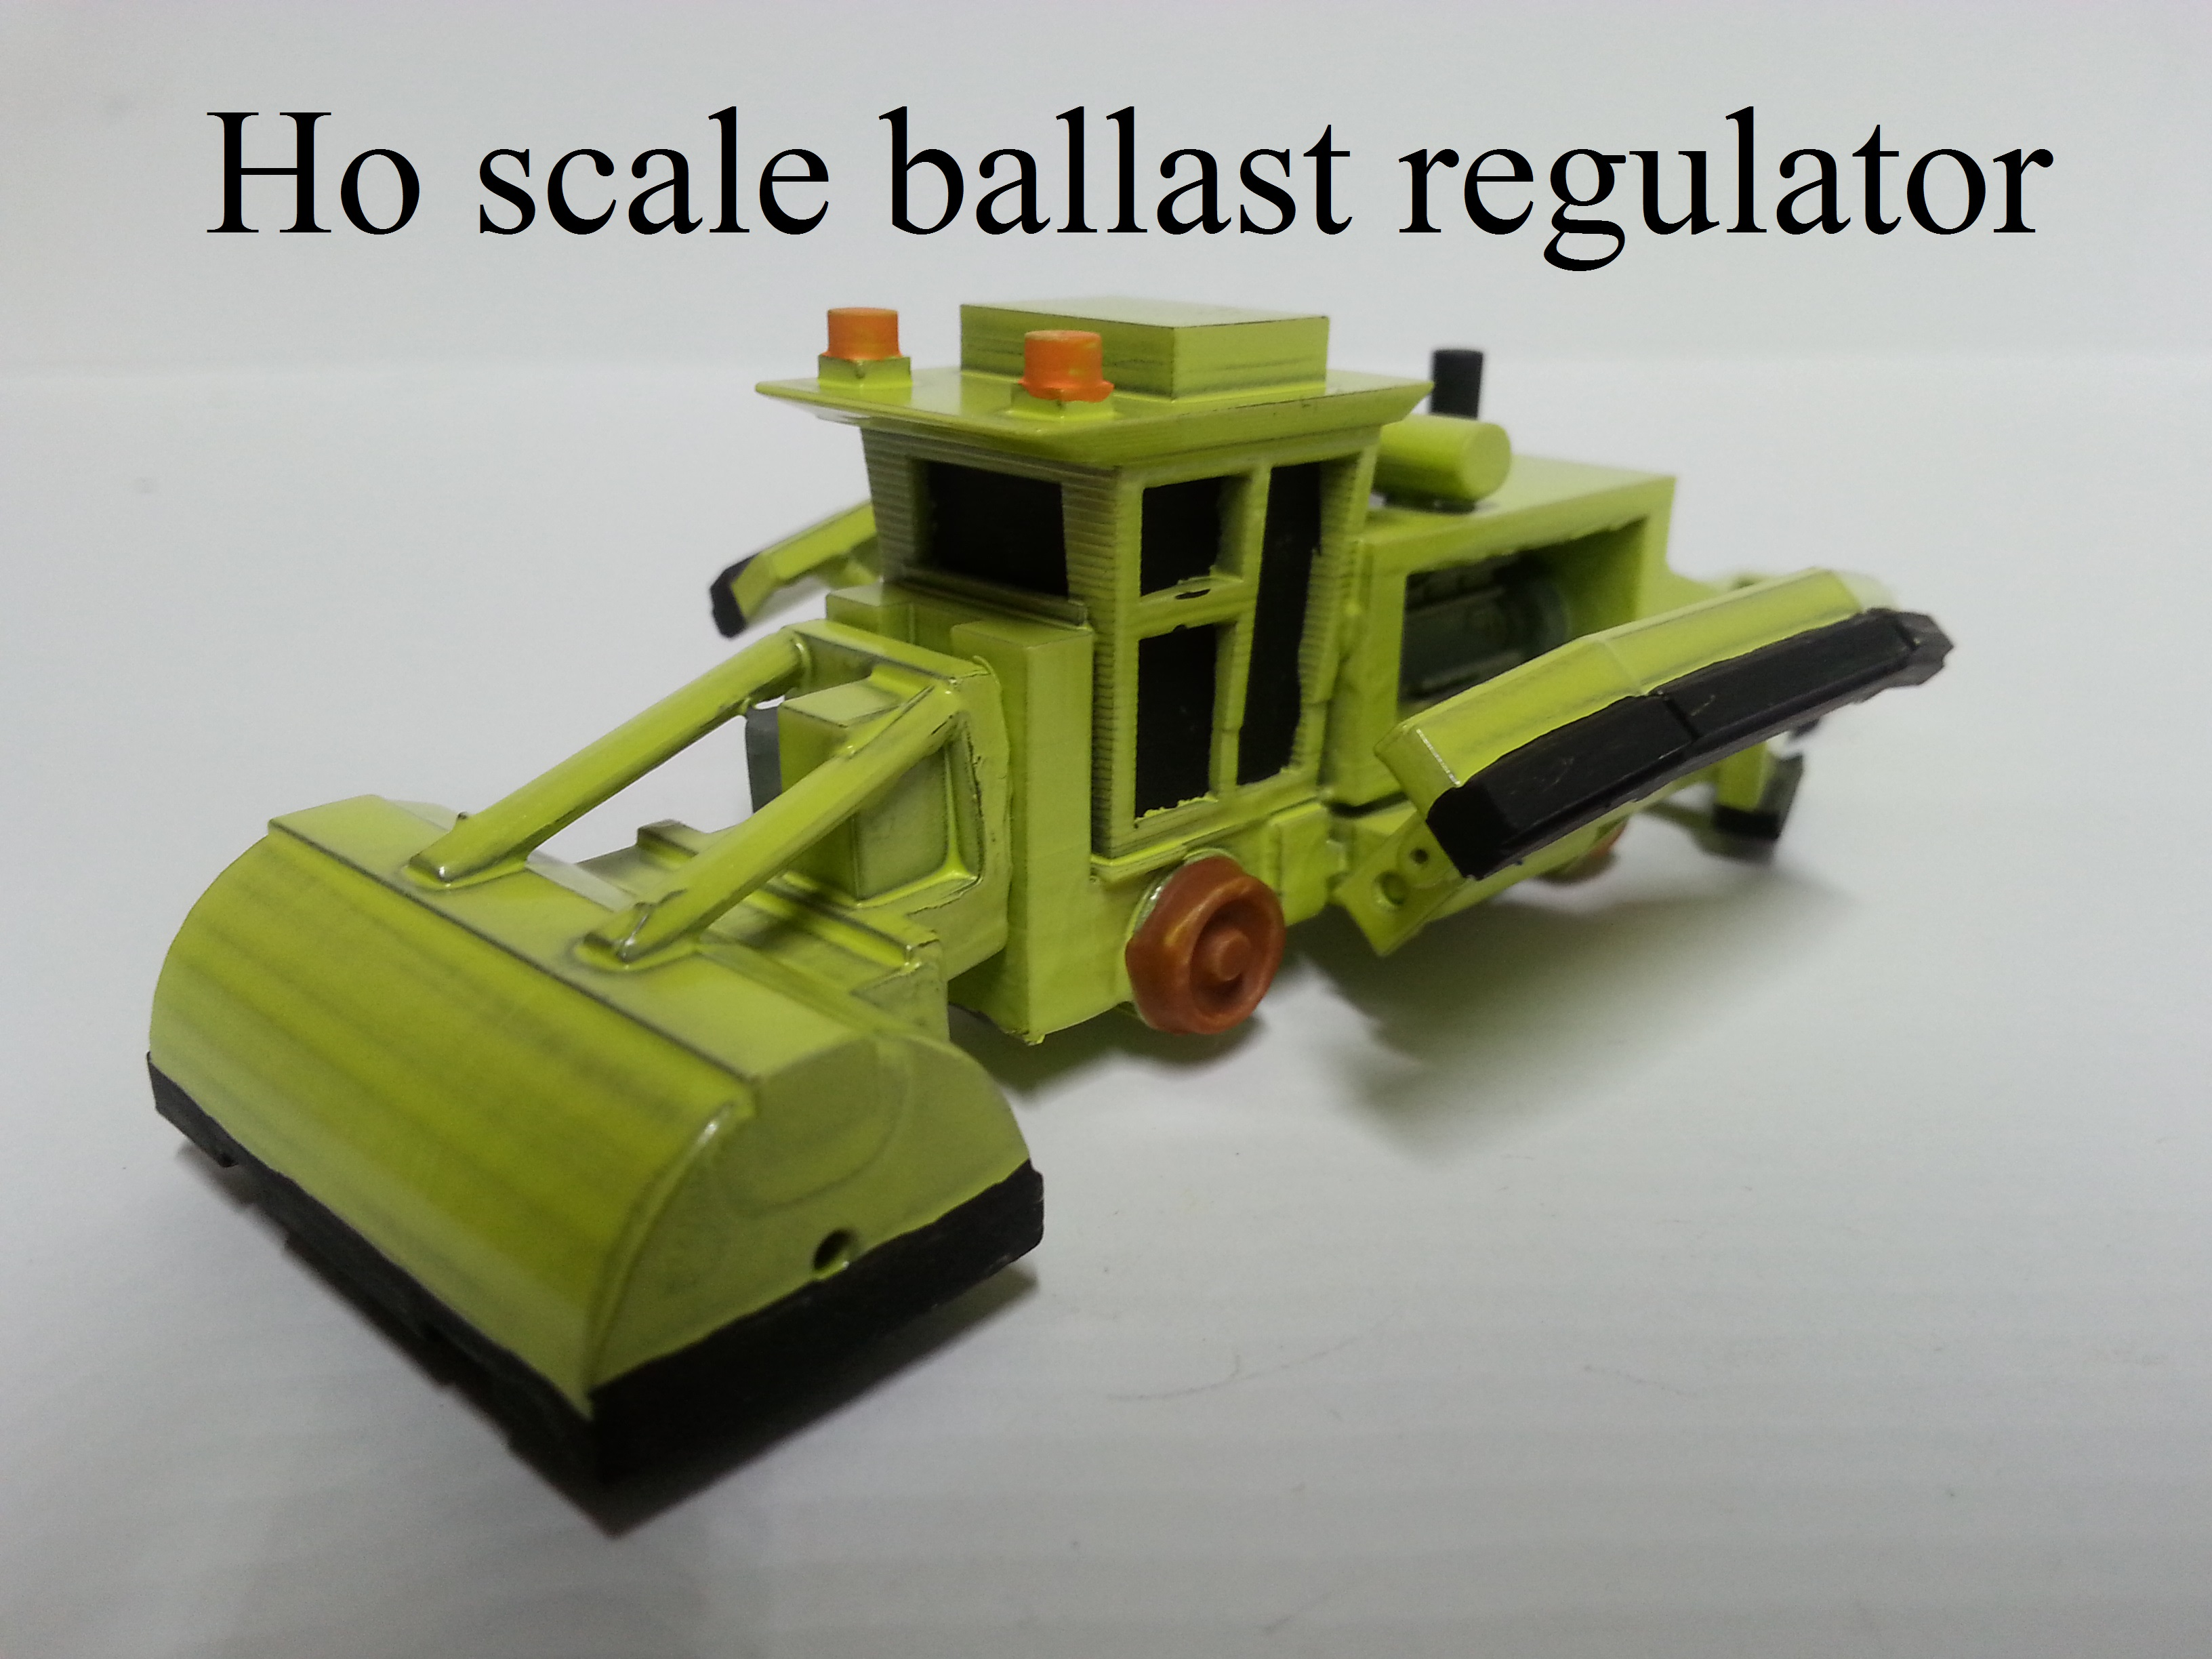 Ho scale ballast regulator